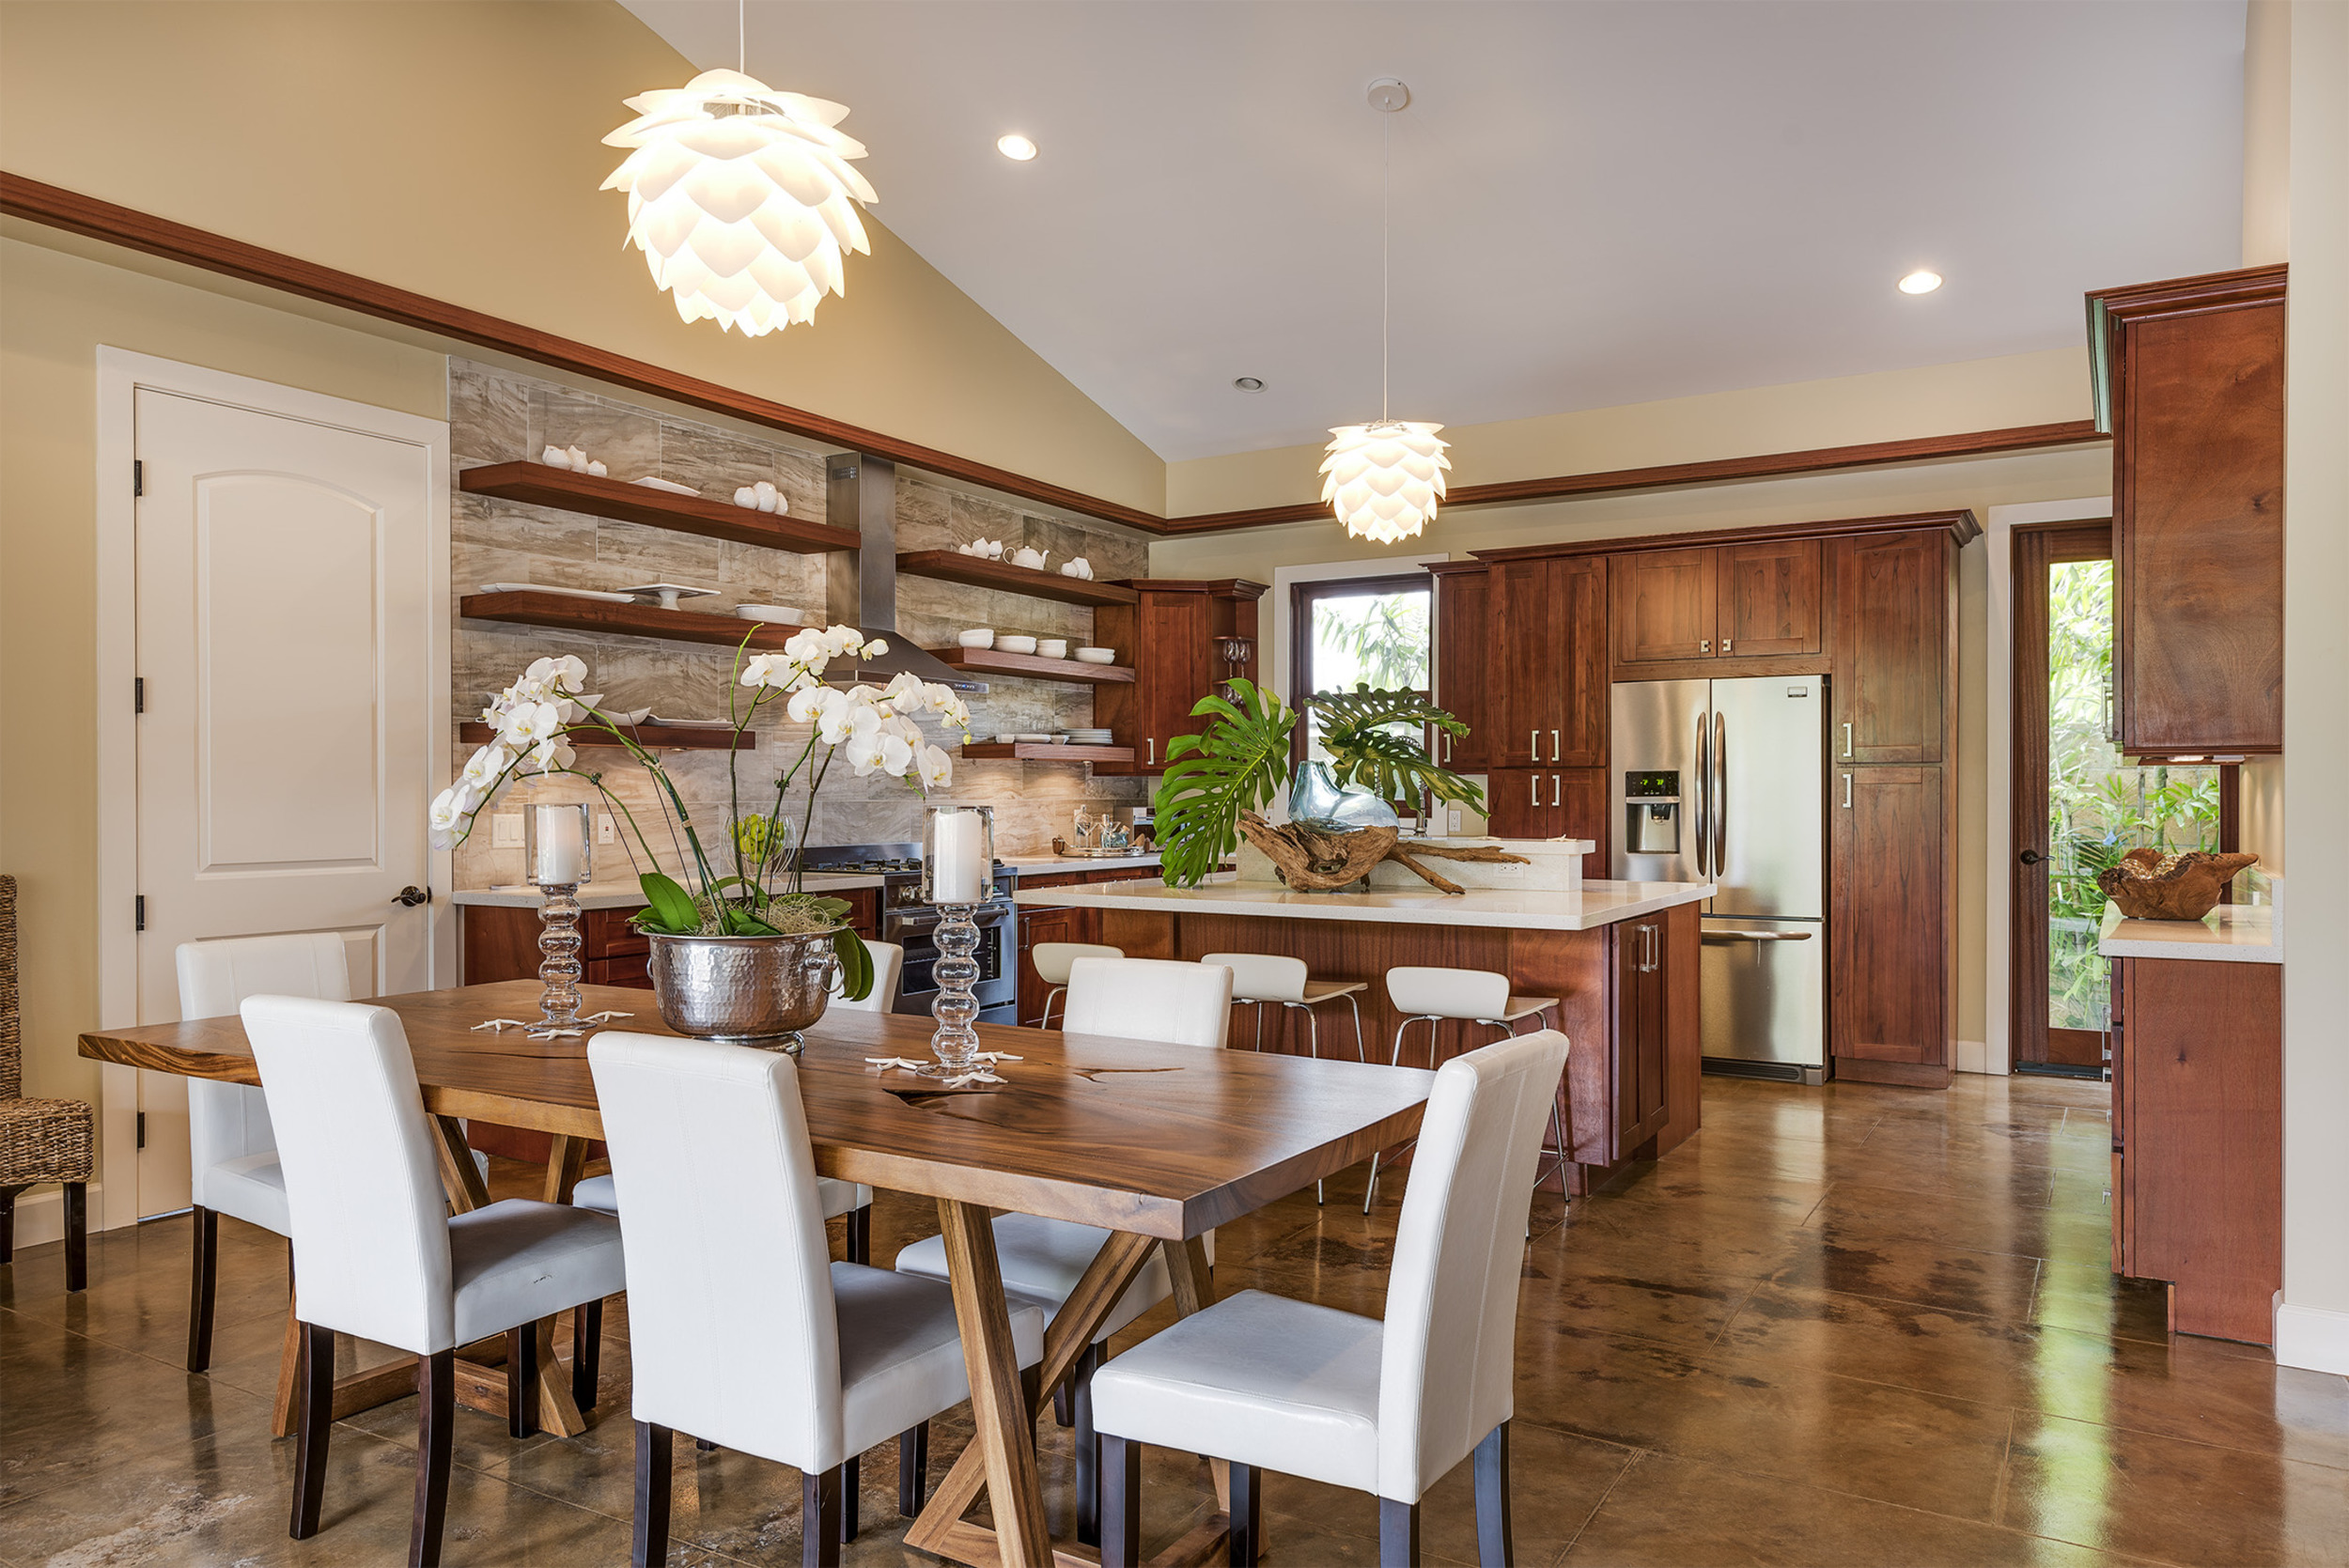 228 N. Kainalu Dr. Luxury Home Staging Hawaii, Home Staging Hawaii, Inouye Interiors LLC,Best Home Stagers Hawaii, Home Stagers in Hawaii, Stagers Hawaii, Home Stager Hawaii, Luxury Home Stager Hawaii